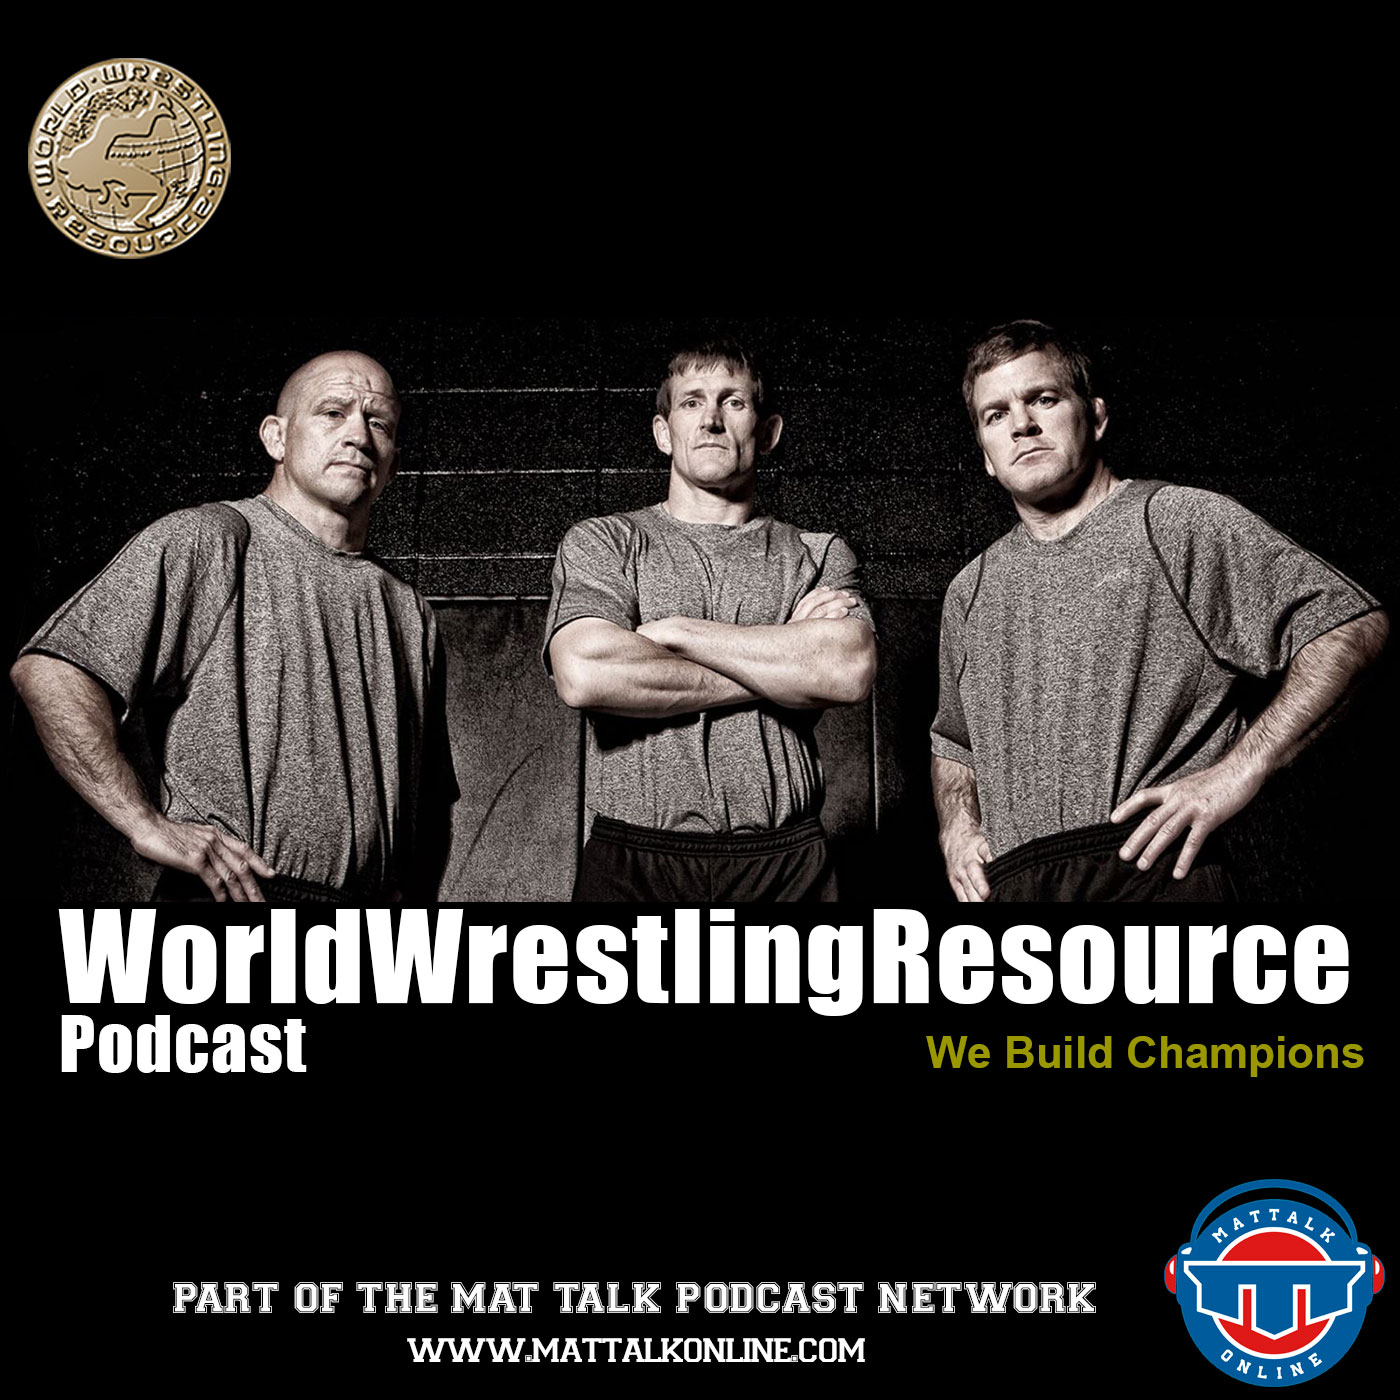 Artwork for WWR15: U.S. Open recap as guest Terry Steiner joins Terry Brands, Jon McGovern and Dennis Hall